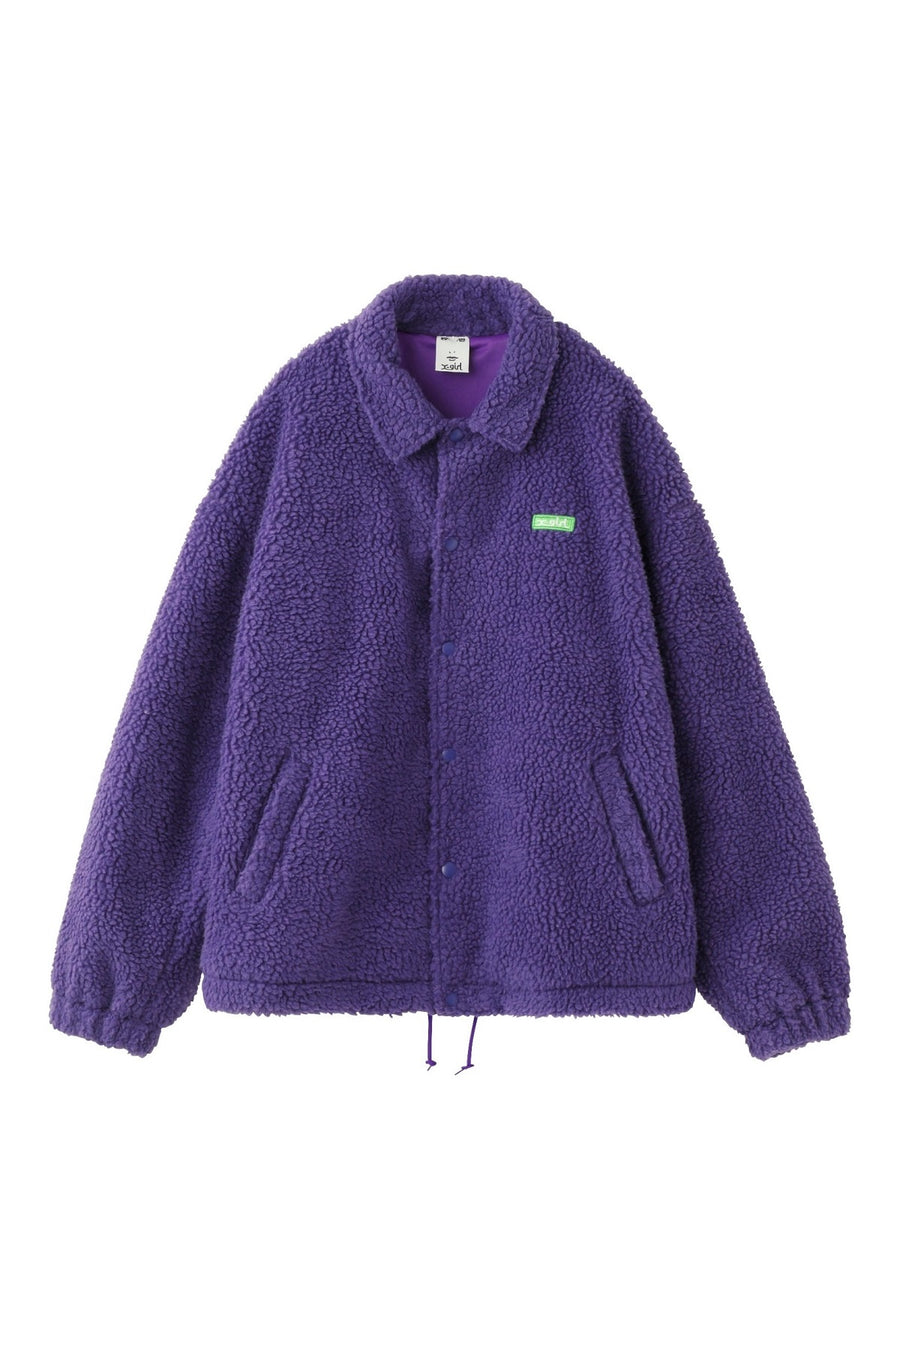 BOA COACH JACKET, JACKETS, X-Girl